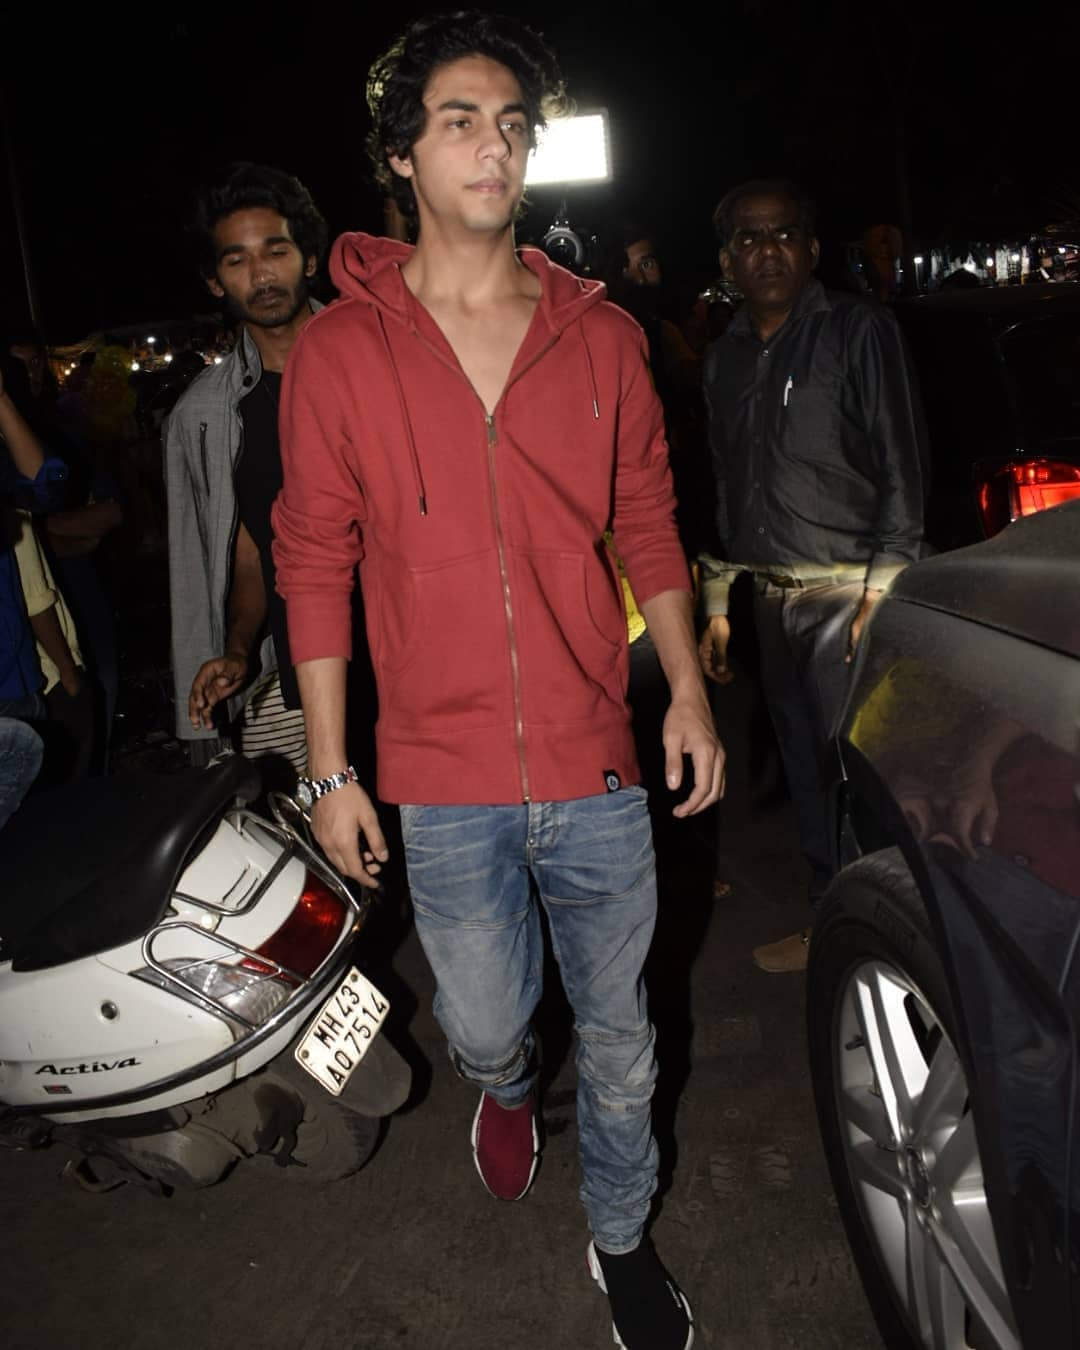 3 aryan khan - birthday party bastian mumbai